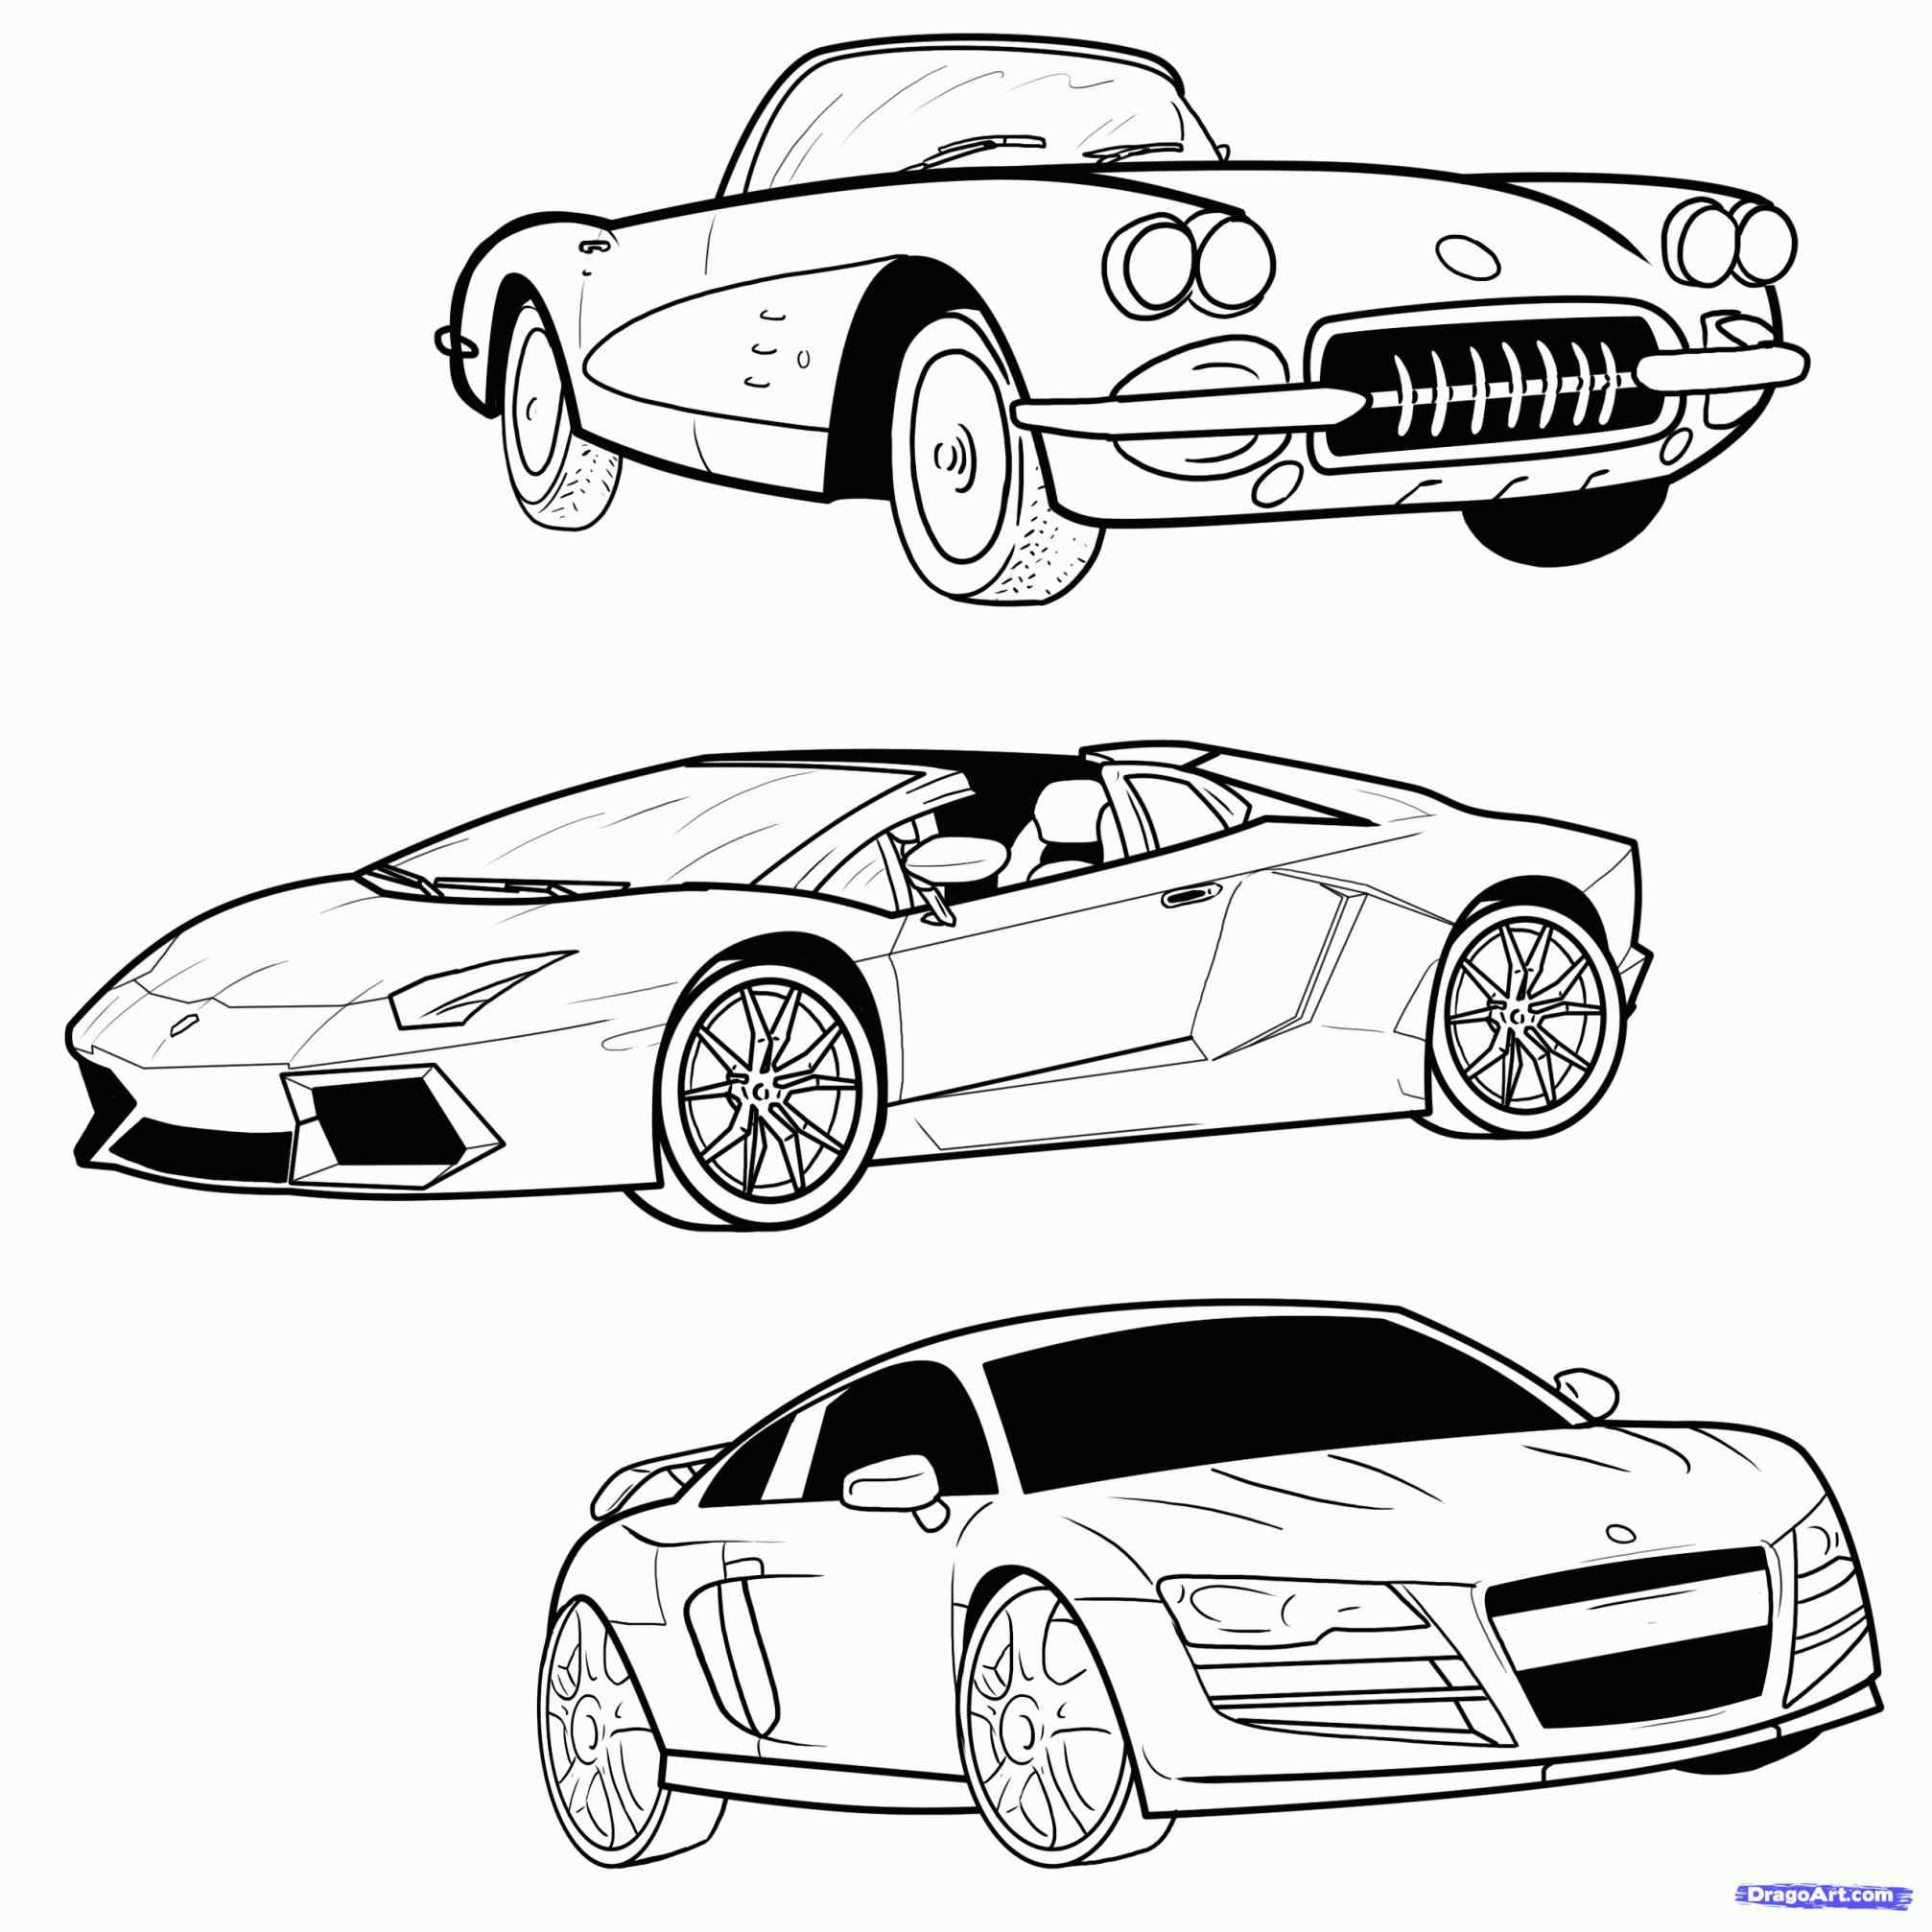 2014x2014 Fast And Furious Eclipse Coloring Pages Online Coloring Printable